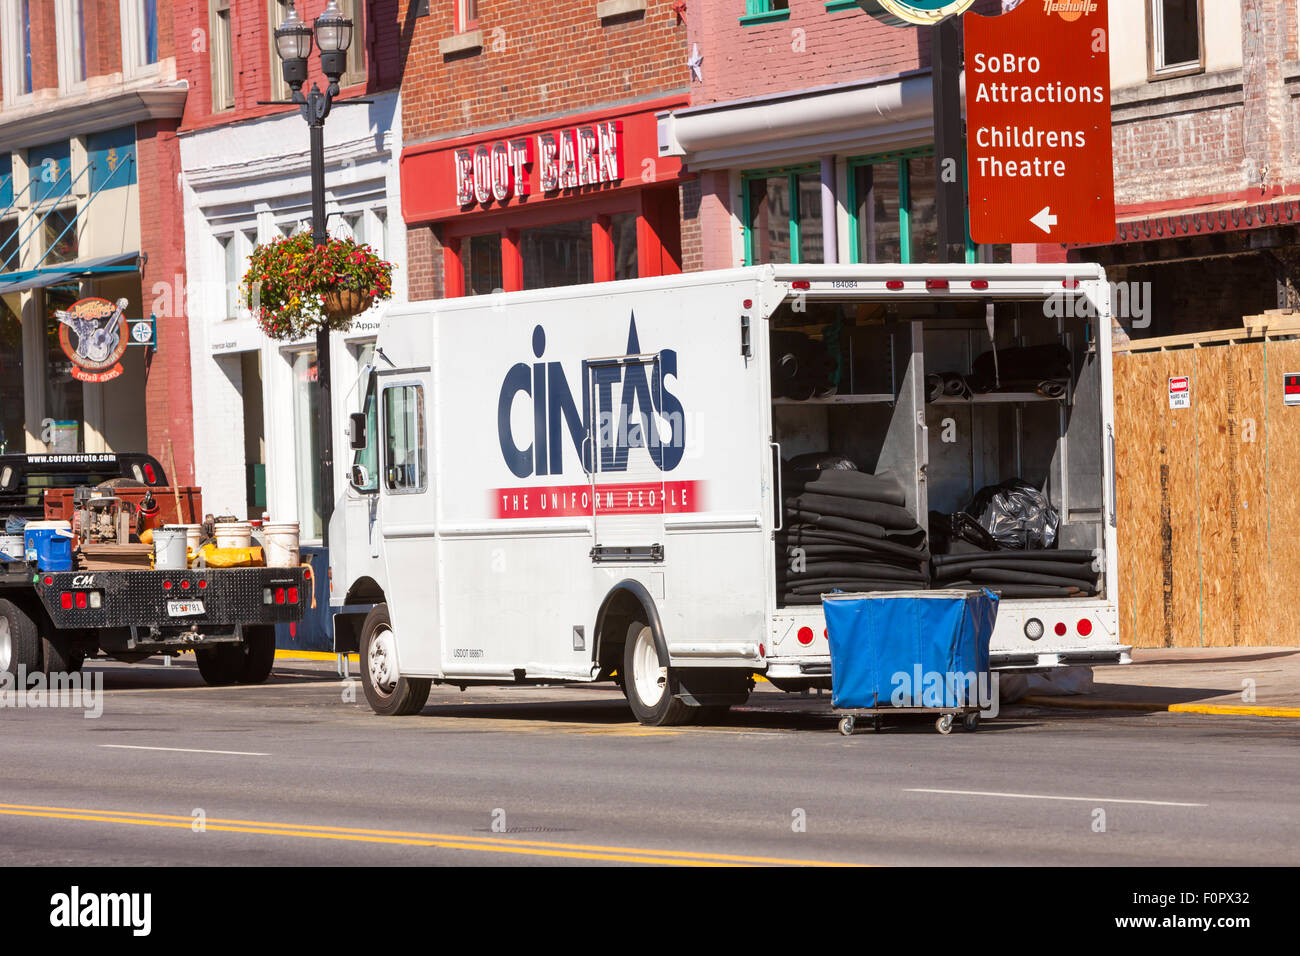 A cintas truck makes a delivery in downtown nashville tennessee stock image